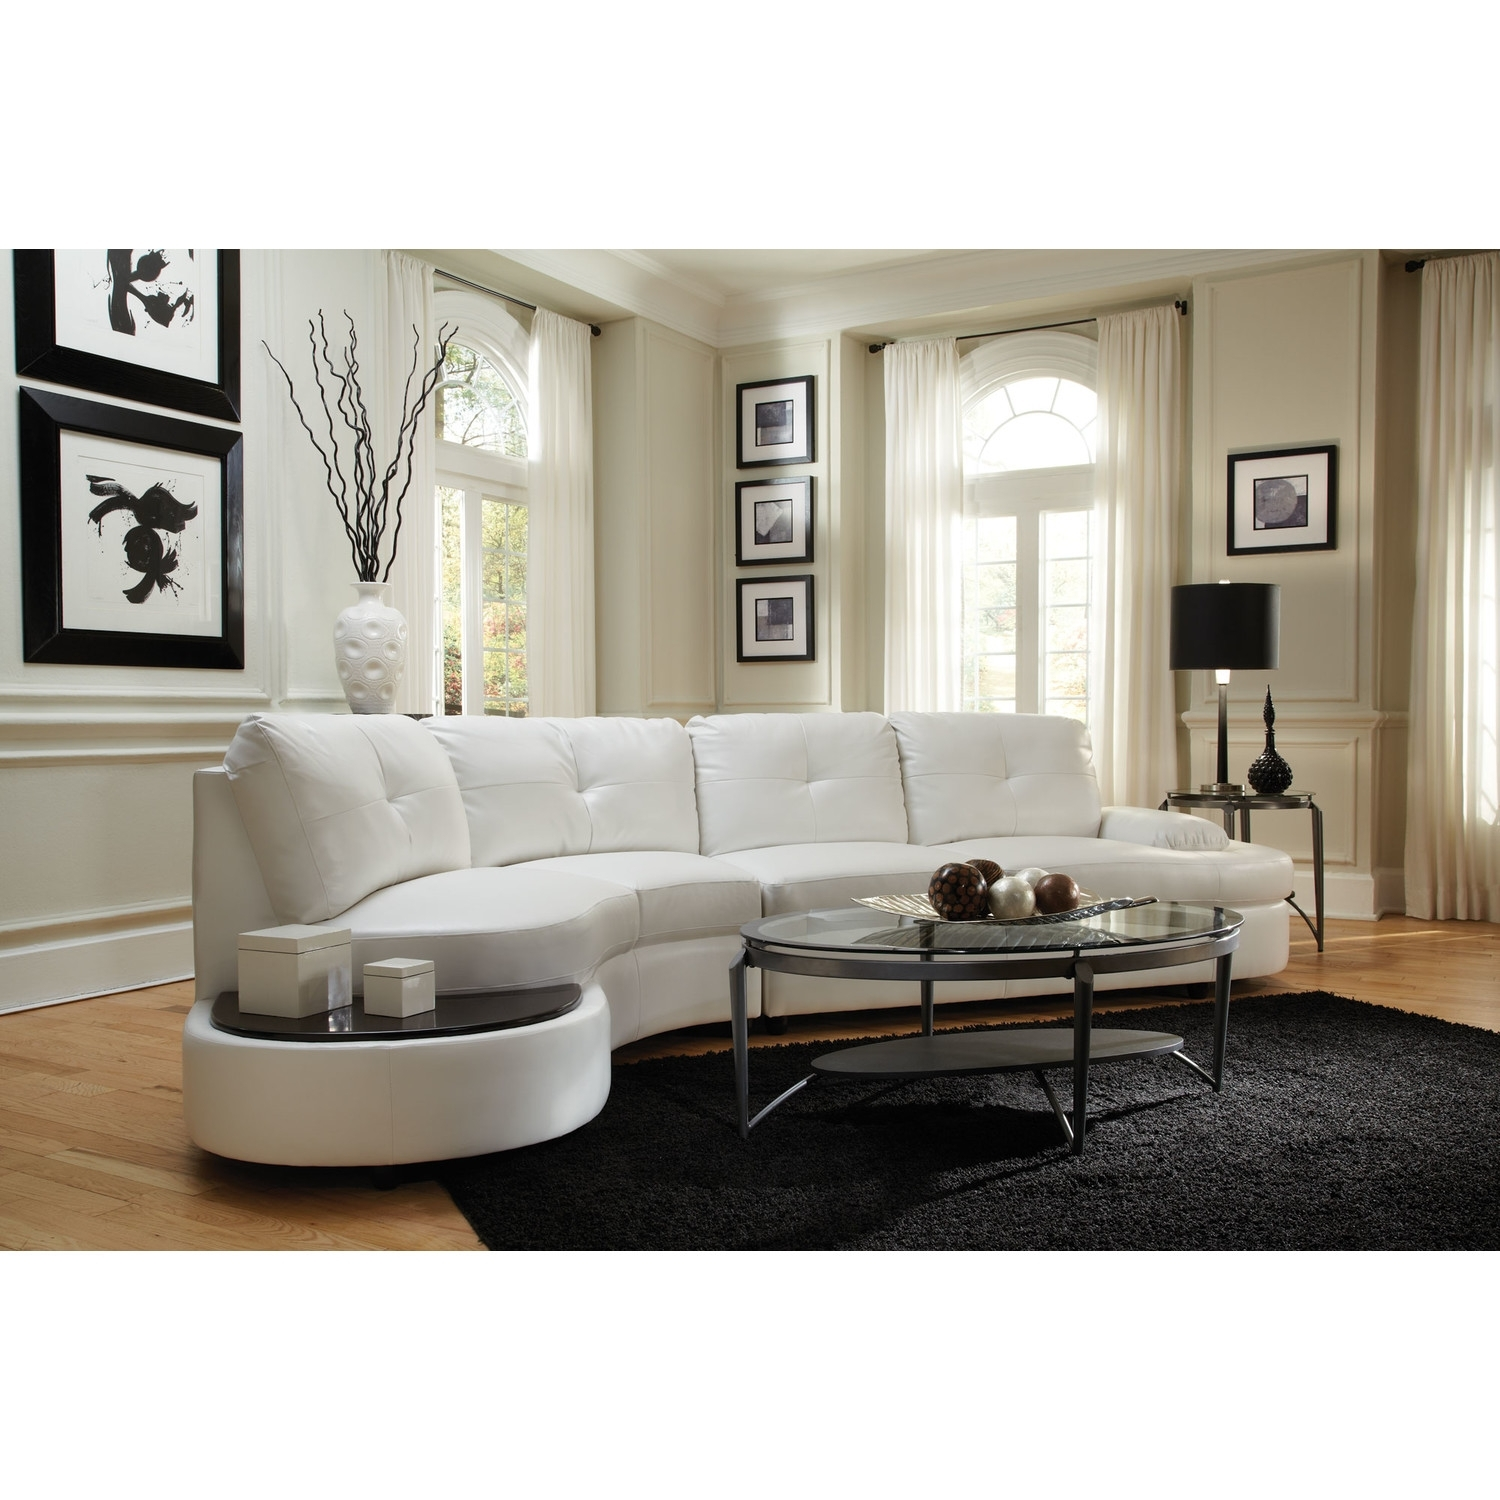 New Cheap White Leather Sectional Sofa 89 In Sectional Sofas intended for Rochester Ny Sectional Sofas